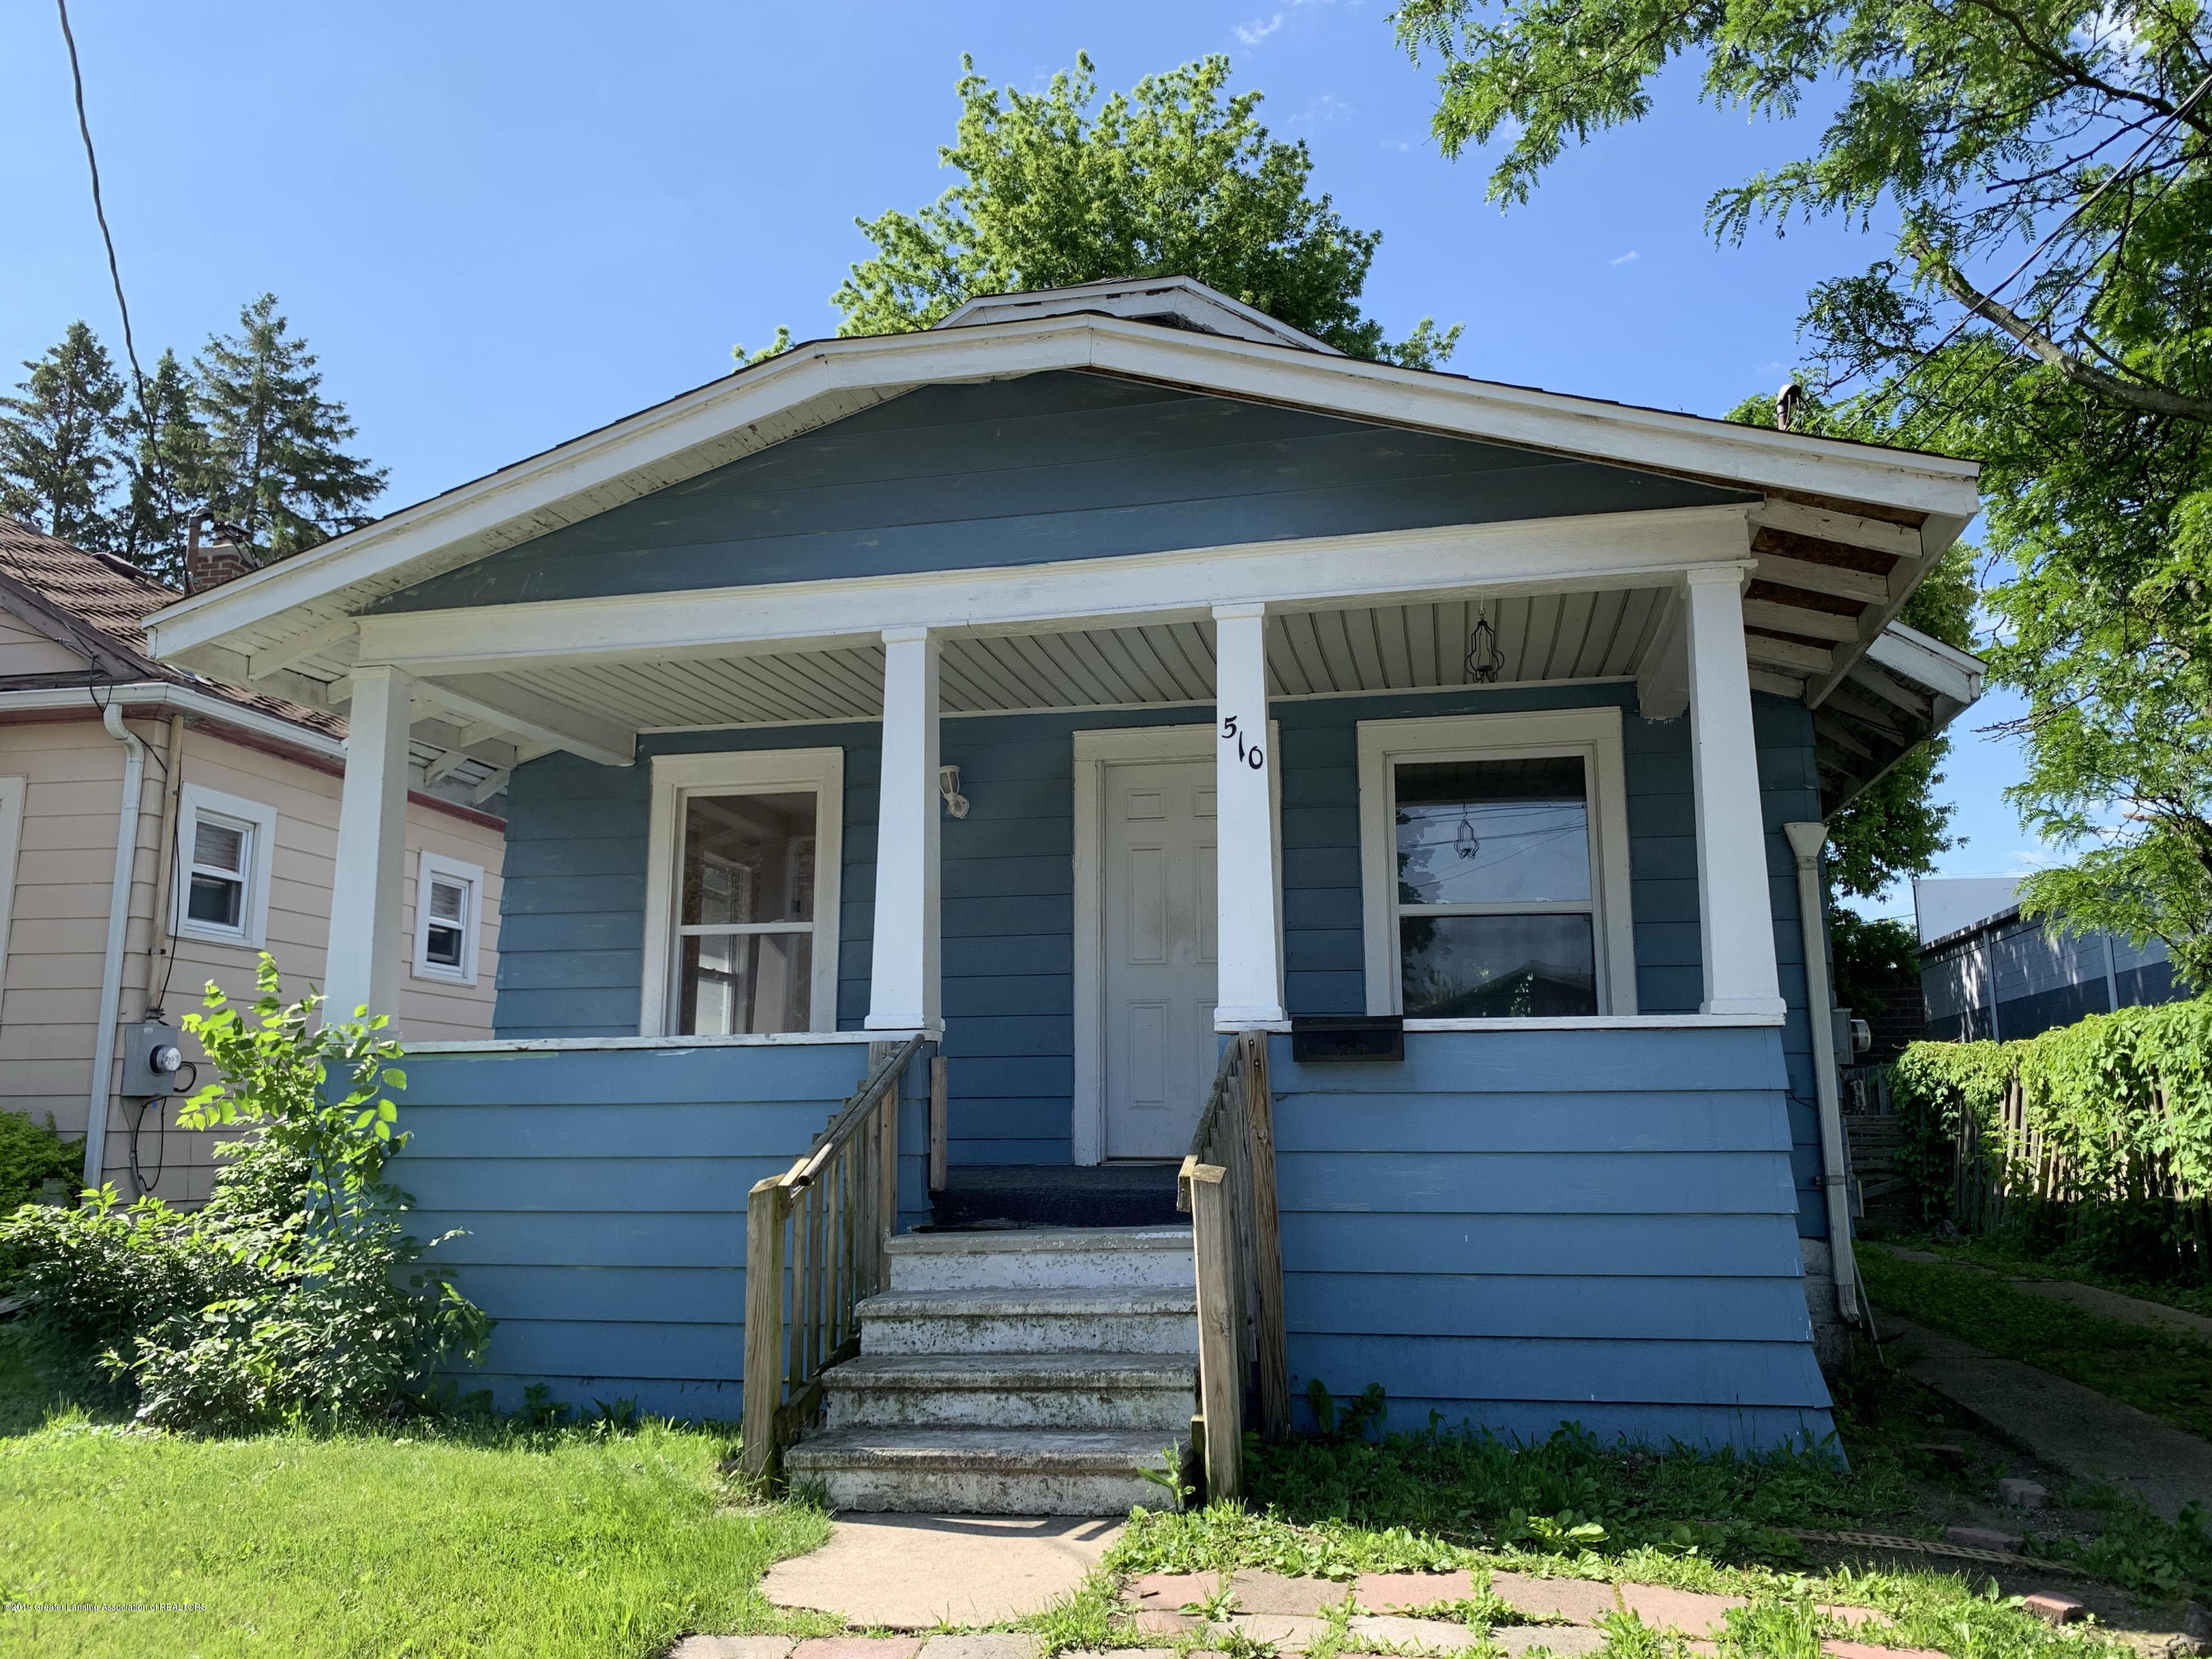 510 Woodrow Ave - FRONT - 1